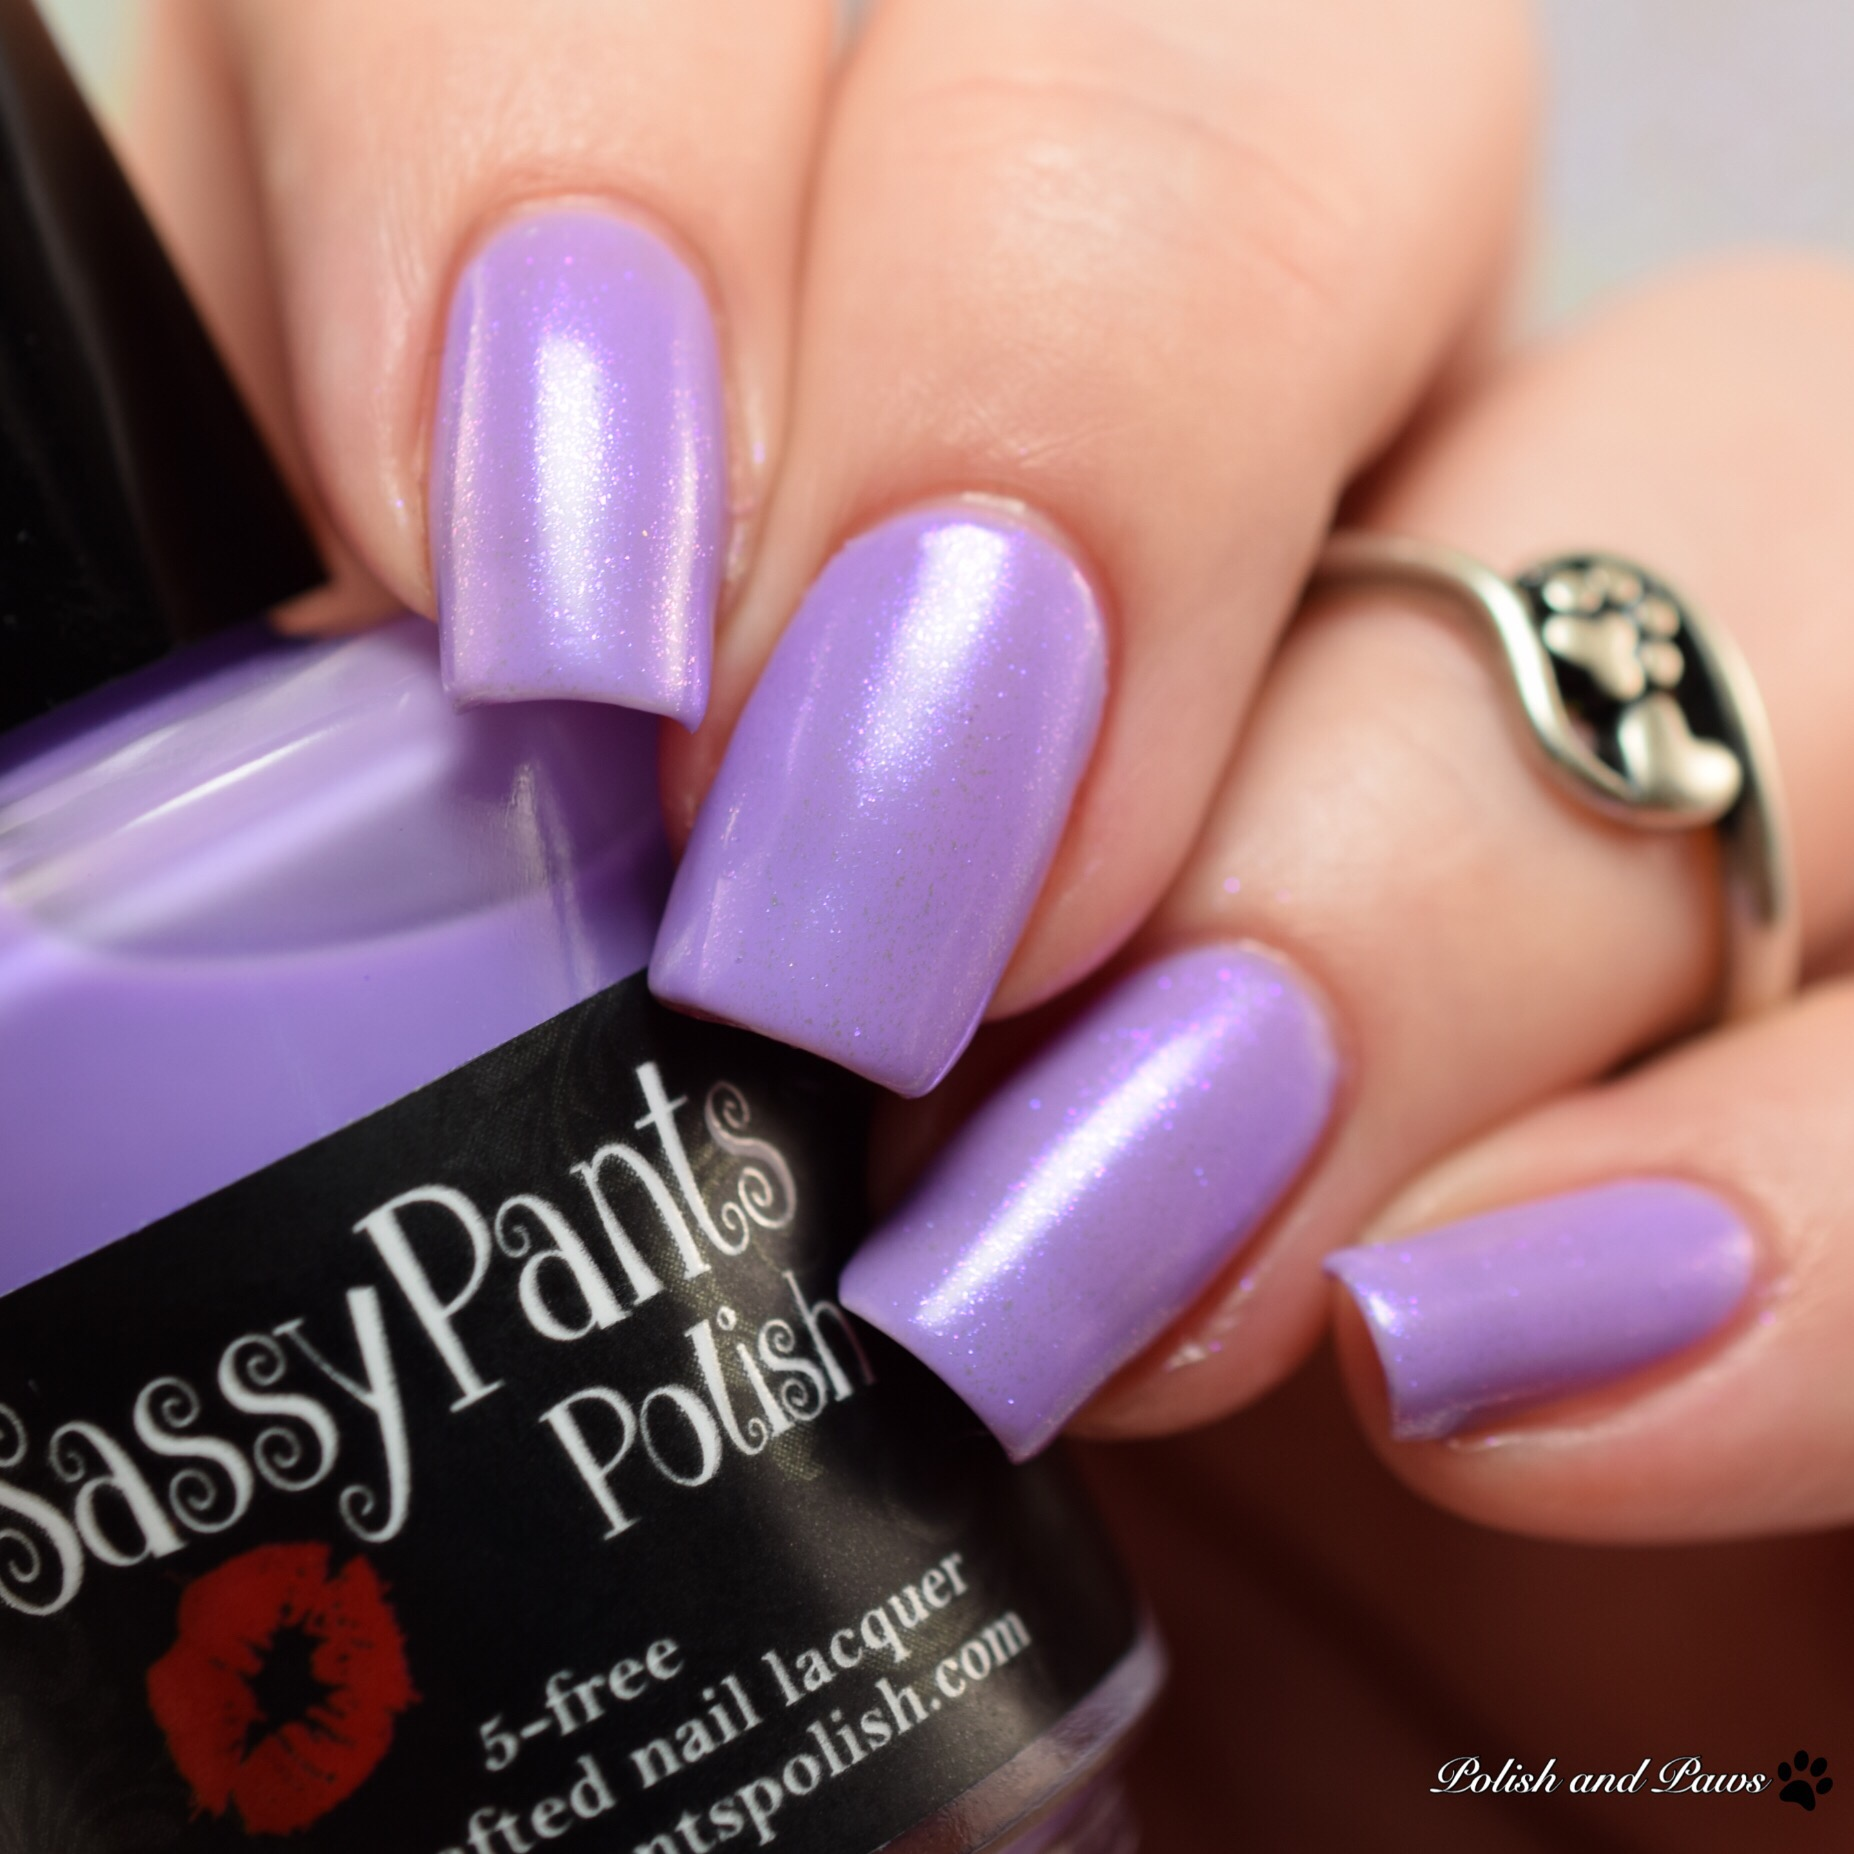 Sassy Pants Polish Forever Yours layered over Blow Me a Kiss